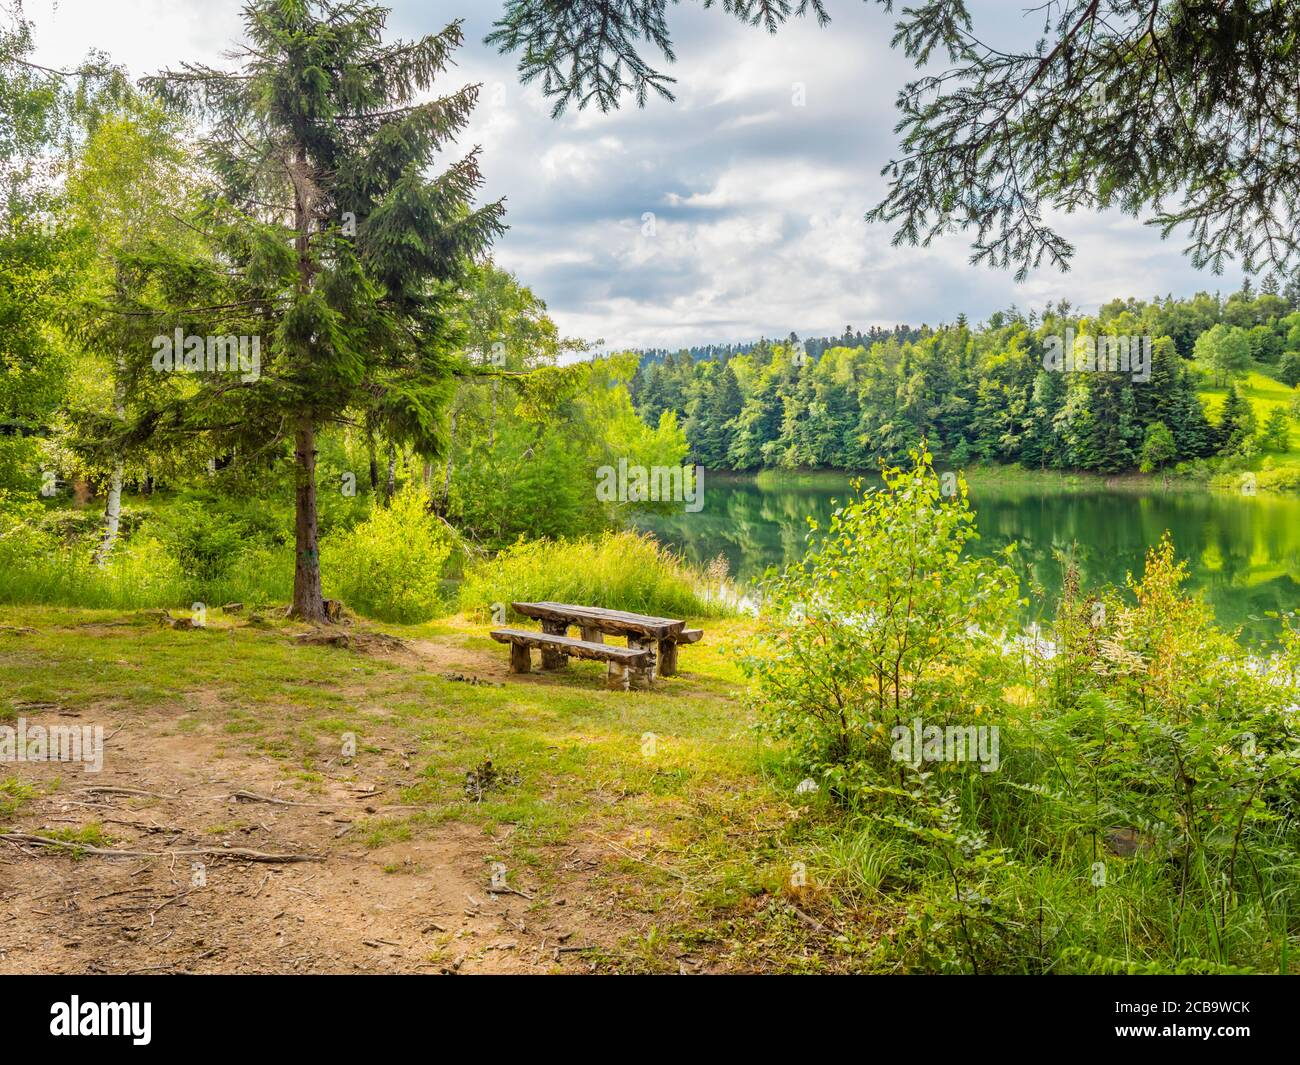 Fantastic views view Green forest pretty beautiful preserved nature natural environment Spring season in lake Mrzla vodica in Croatia Europe Stock Photo